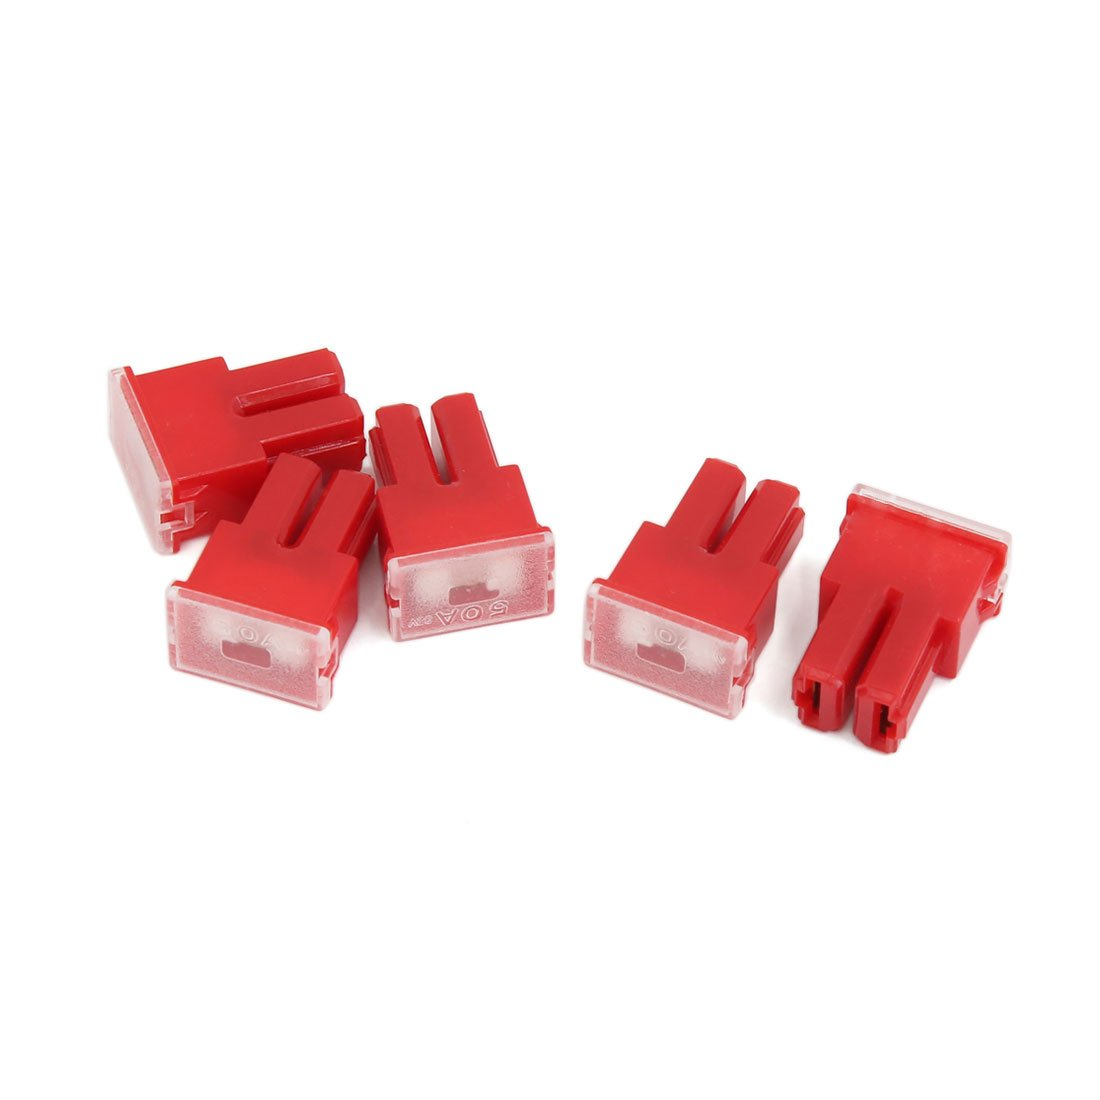 uxcell 50A 32V Car Pacific Type PAL Female Terminals Slow Blow Slot Fuses Red 5pcs a16041900ux0706